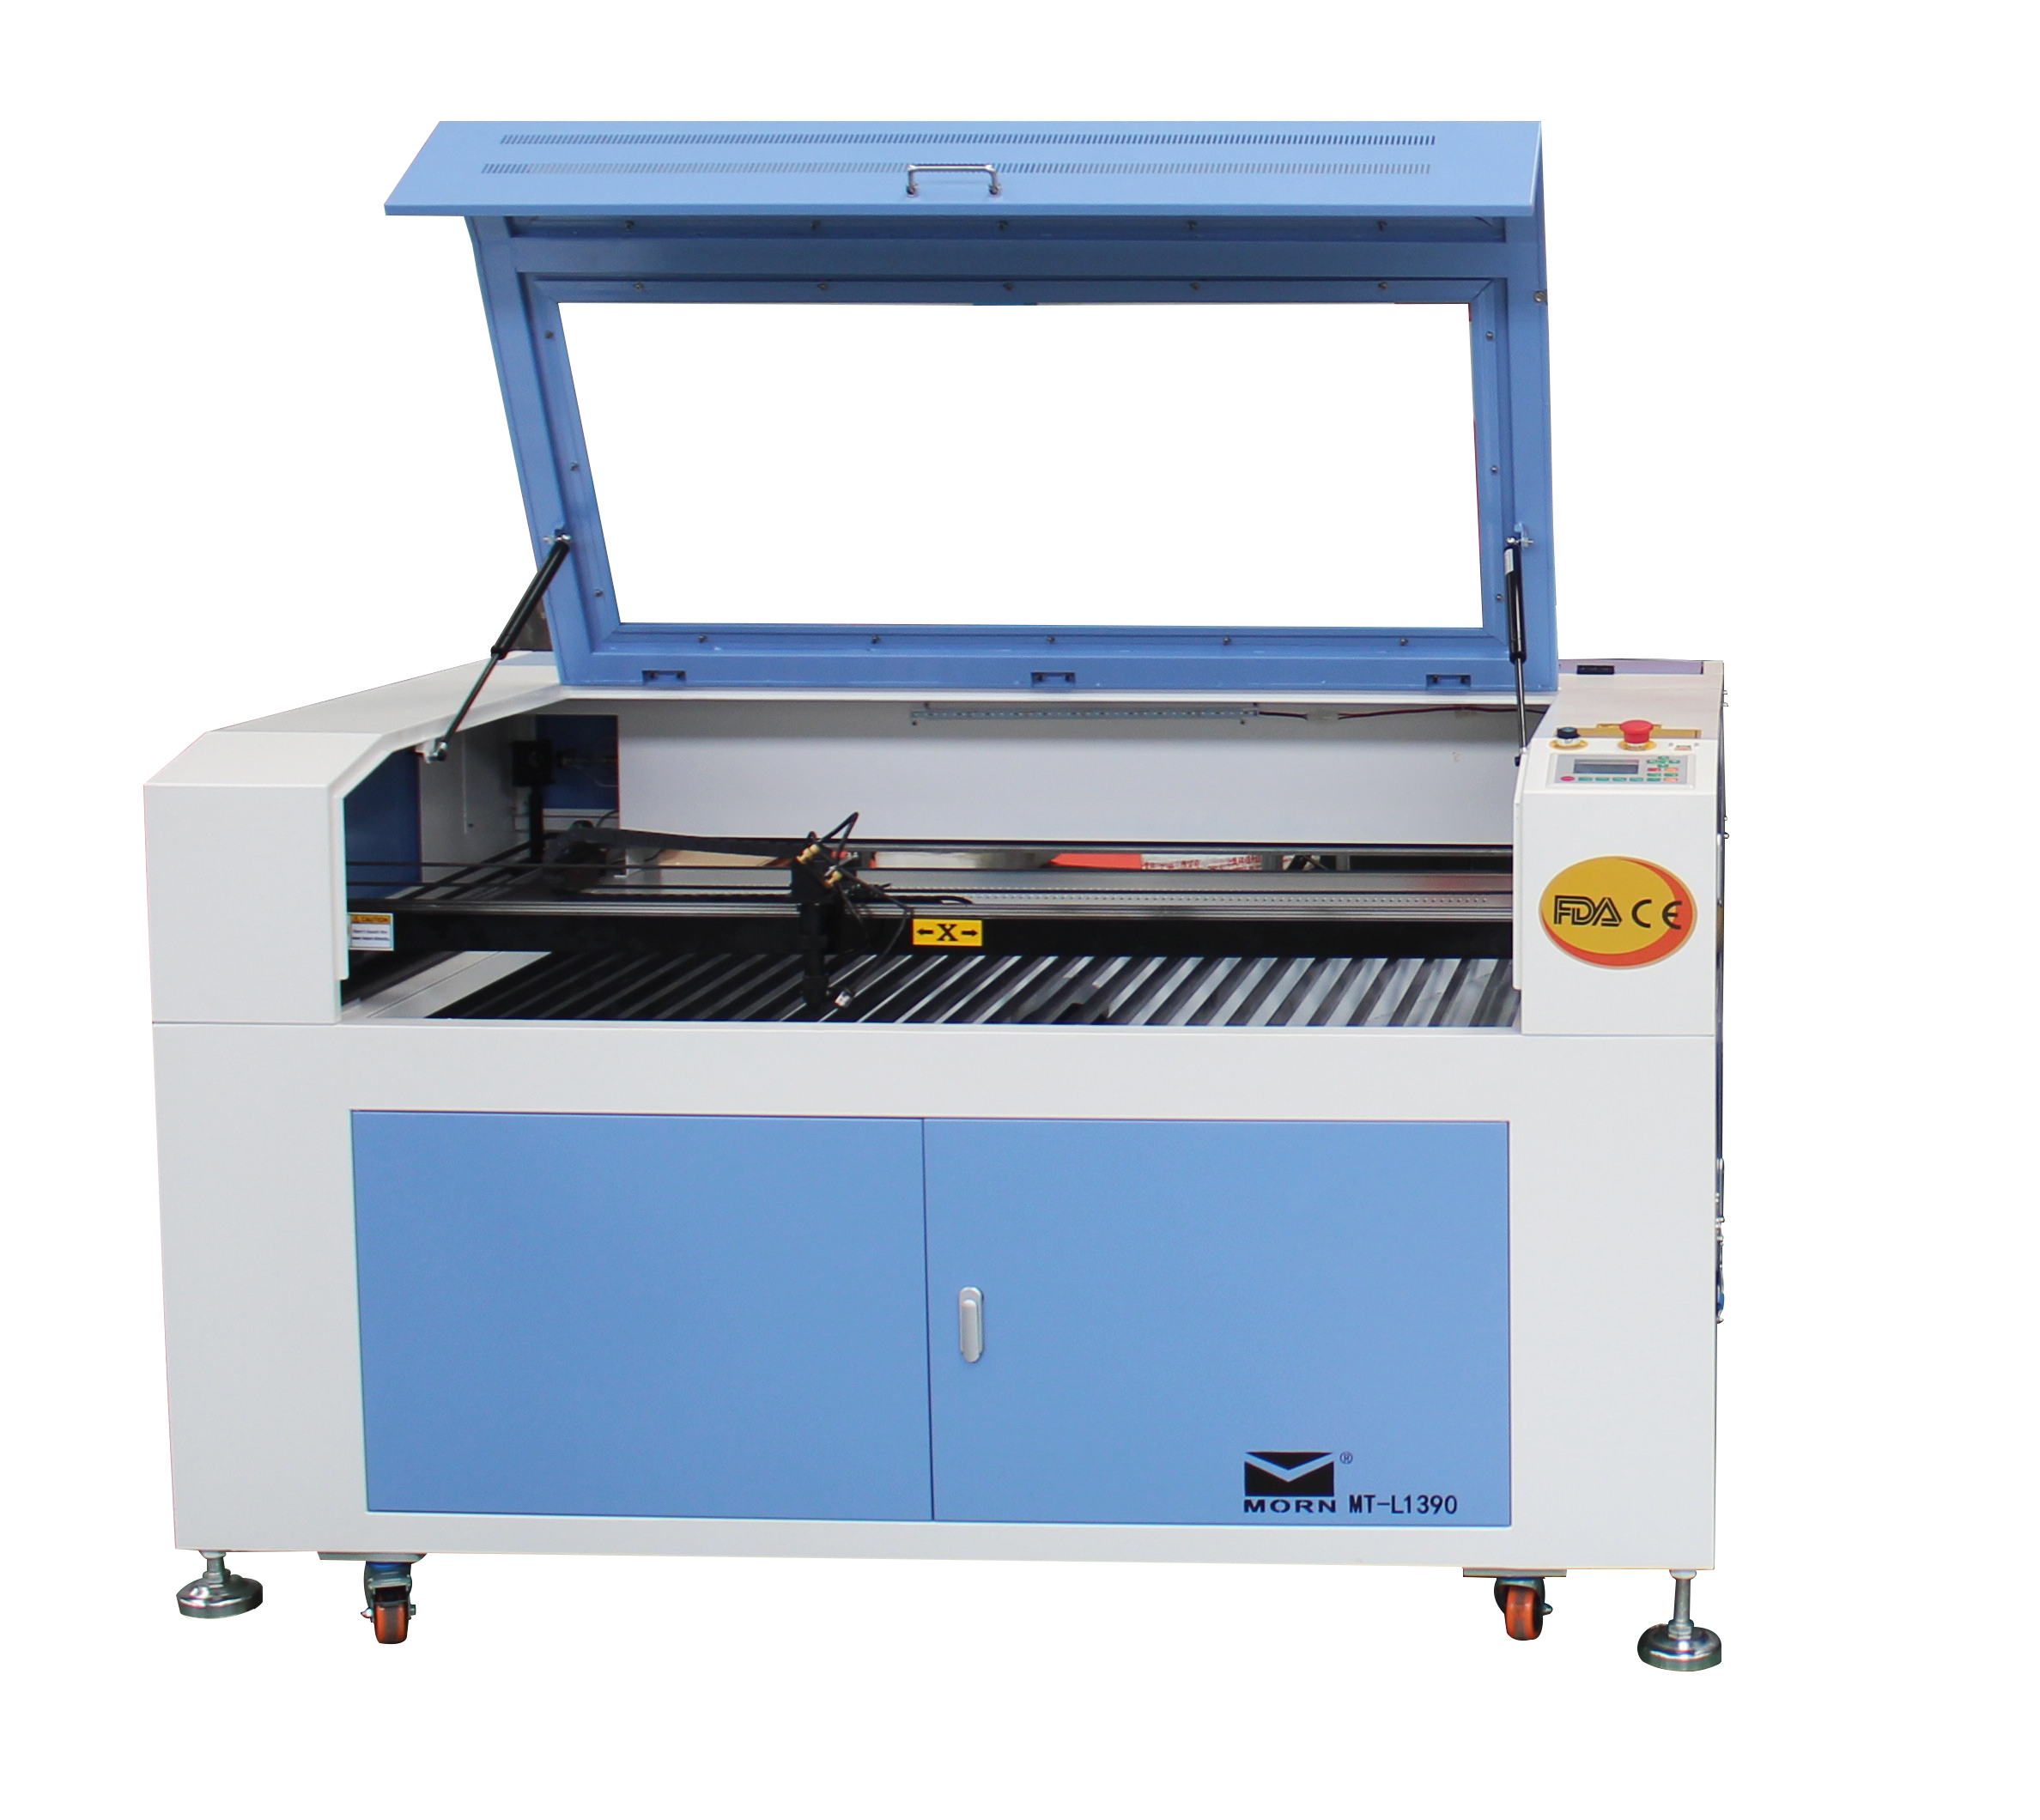 CNC CO2 laser engraver and cutting machine wooden laser engraving machine 1390 for DIY crafts plywood, wood, acrylic cutter